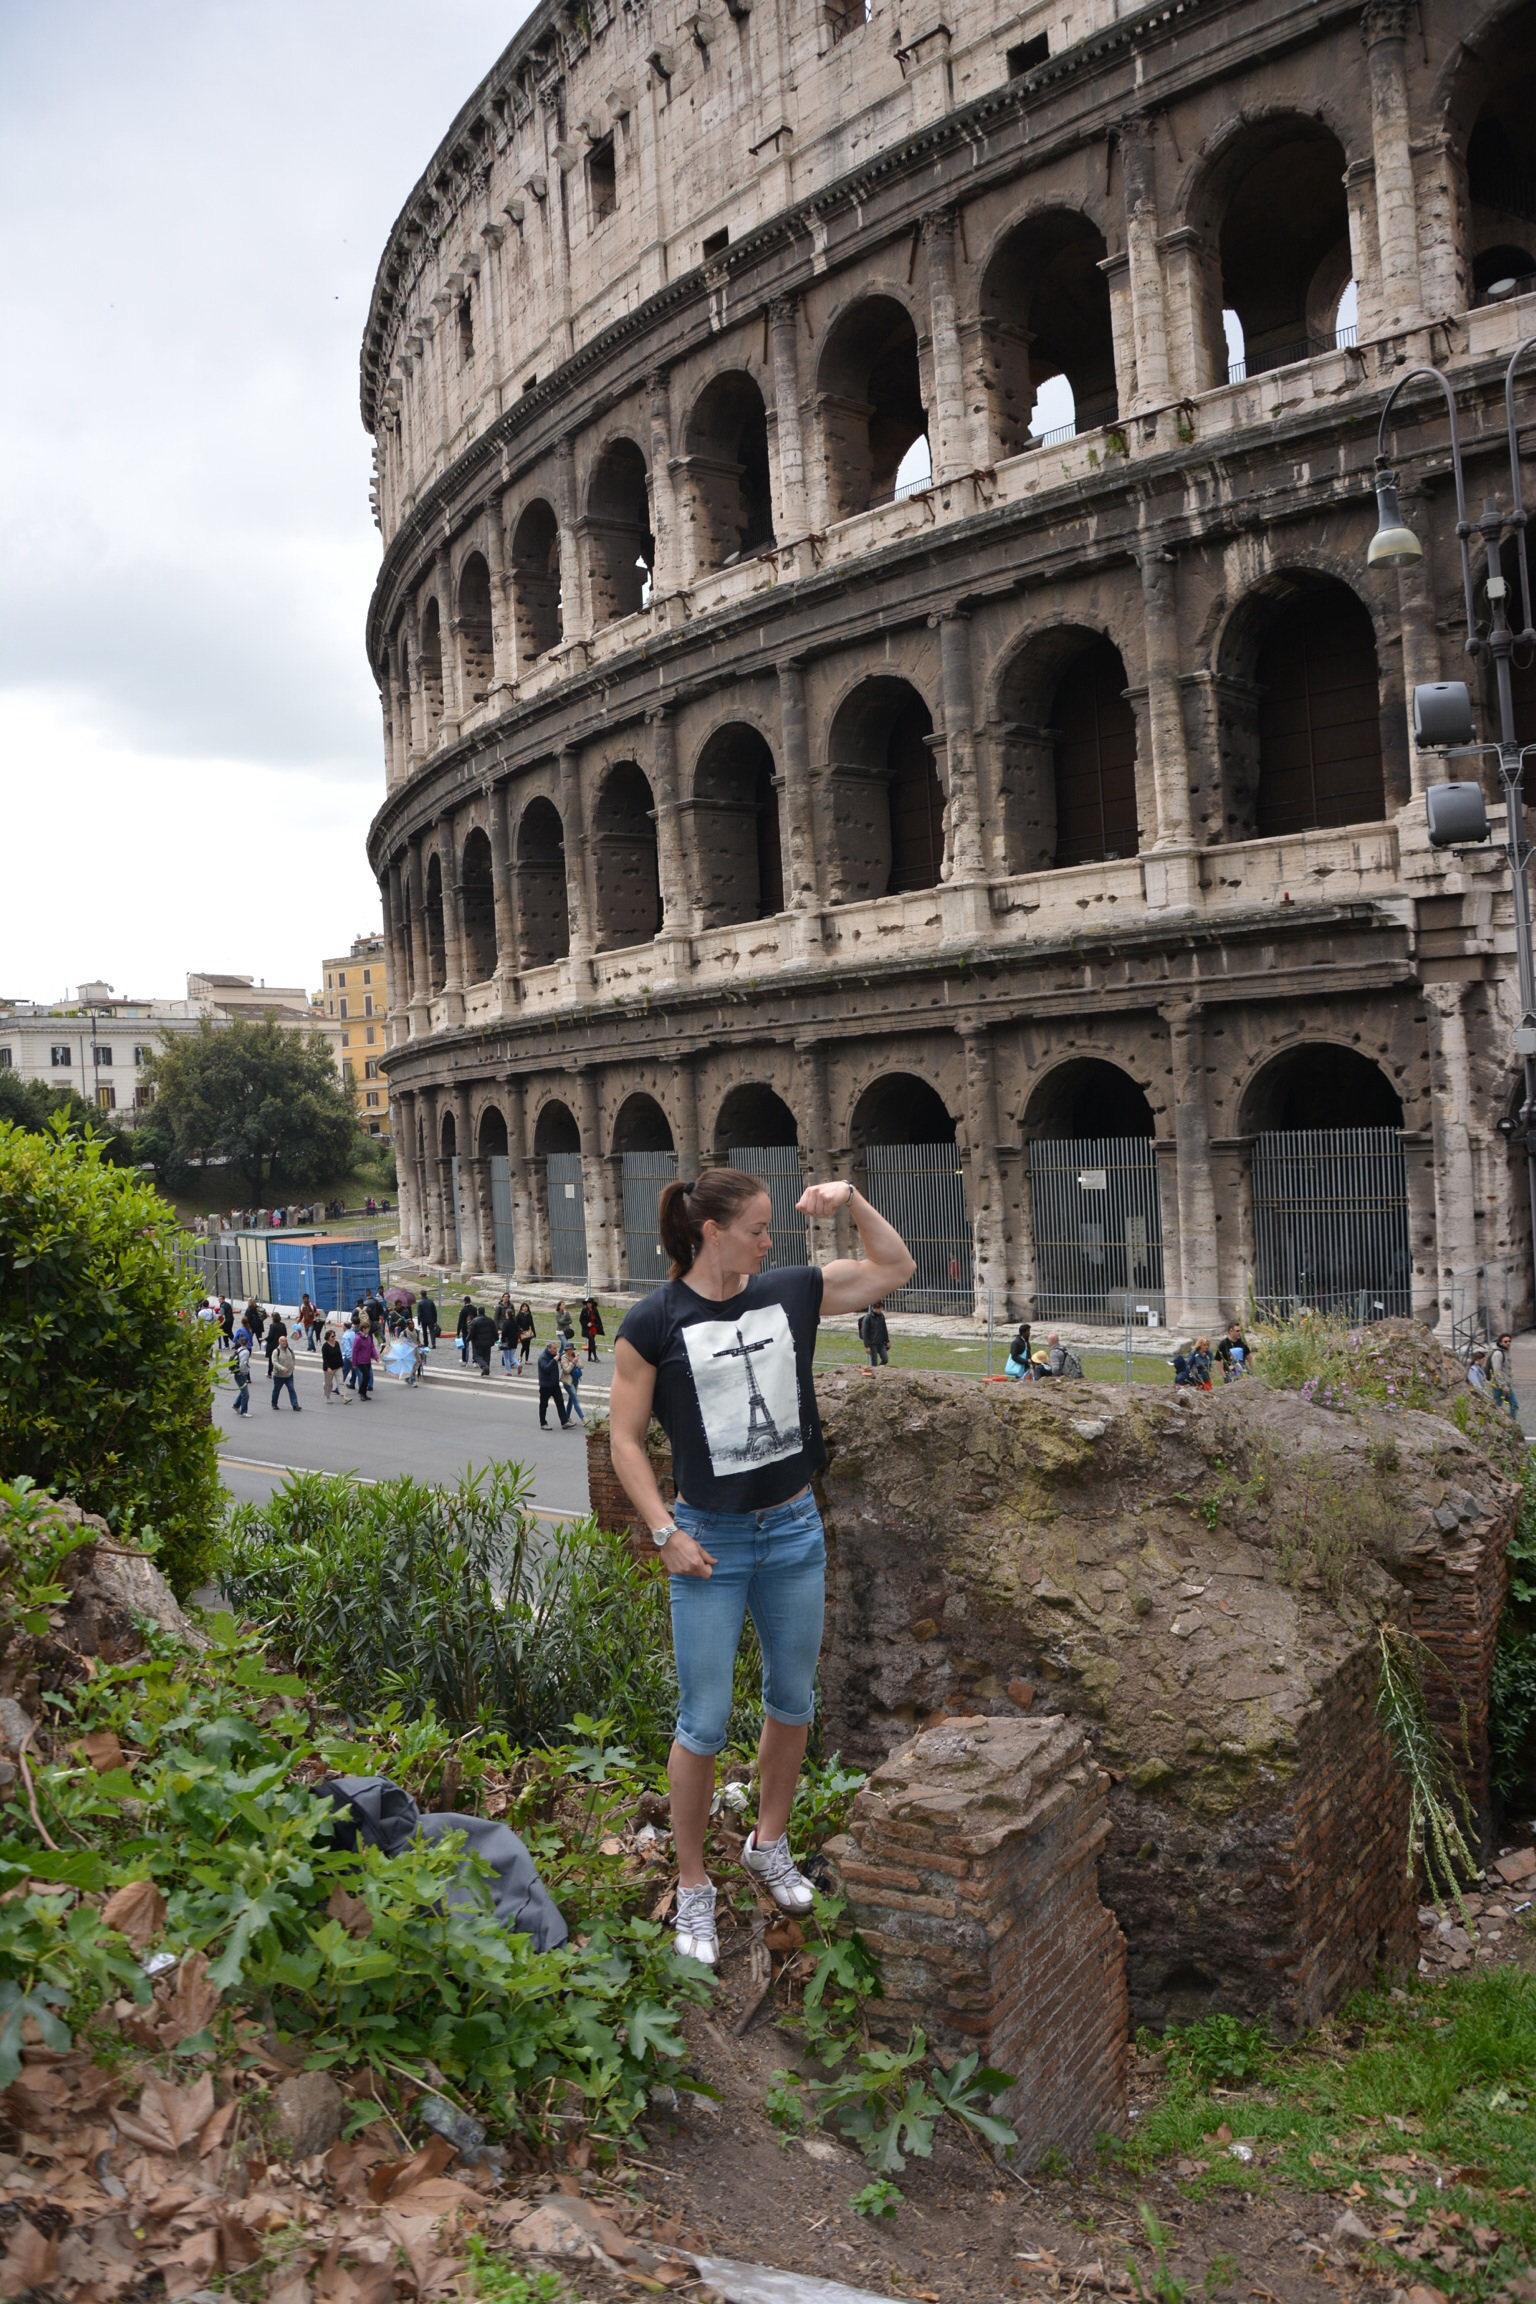 10 important things that I have learned about Rome.